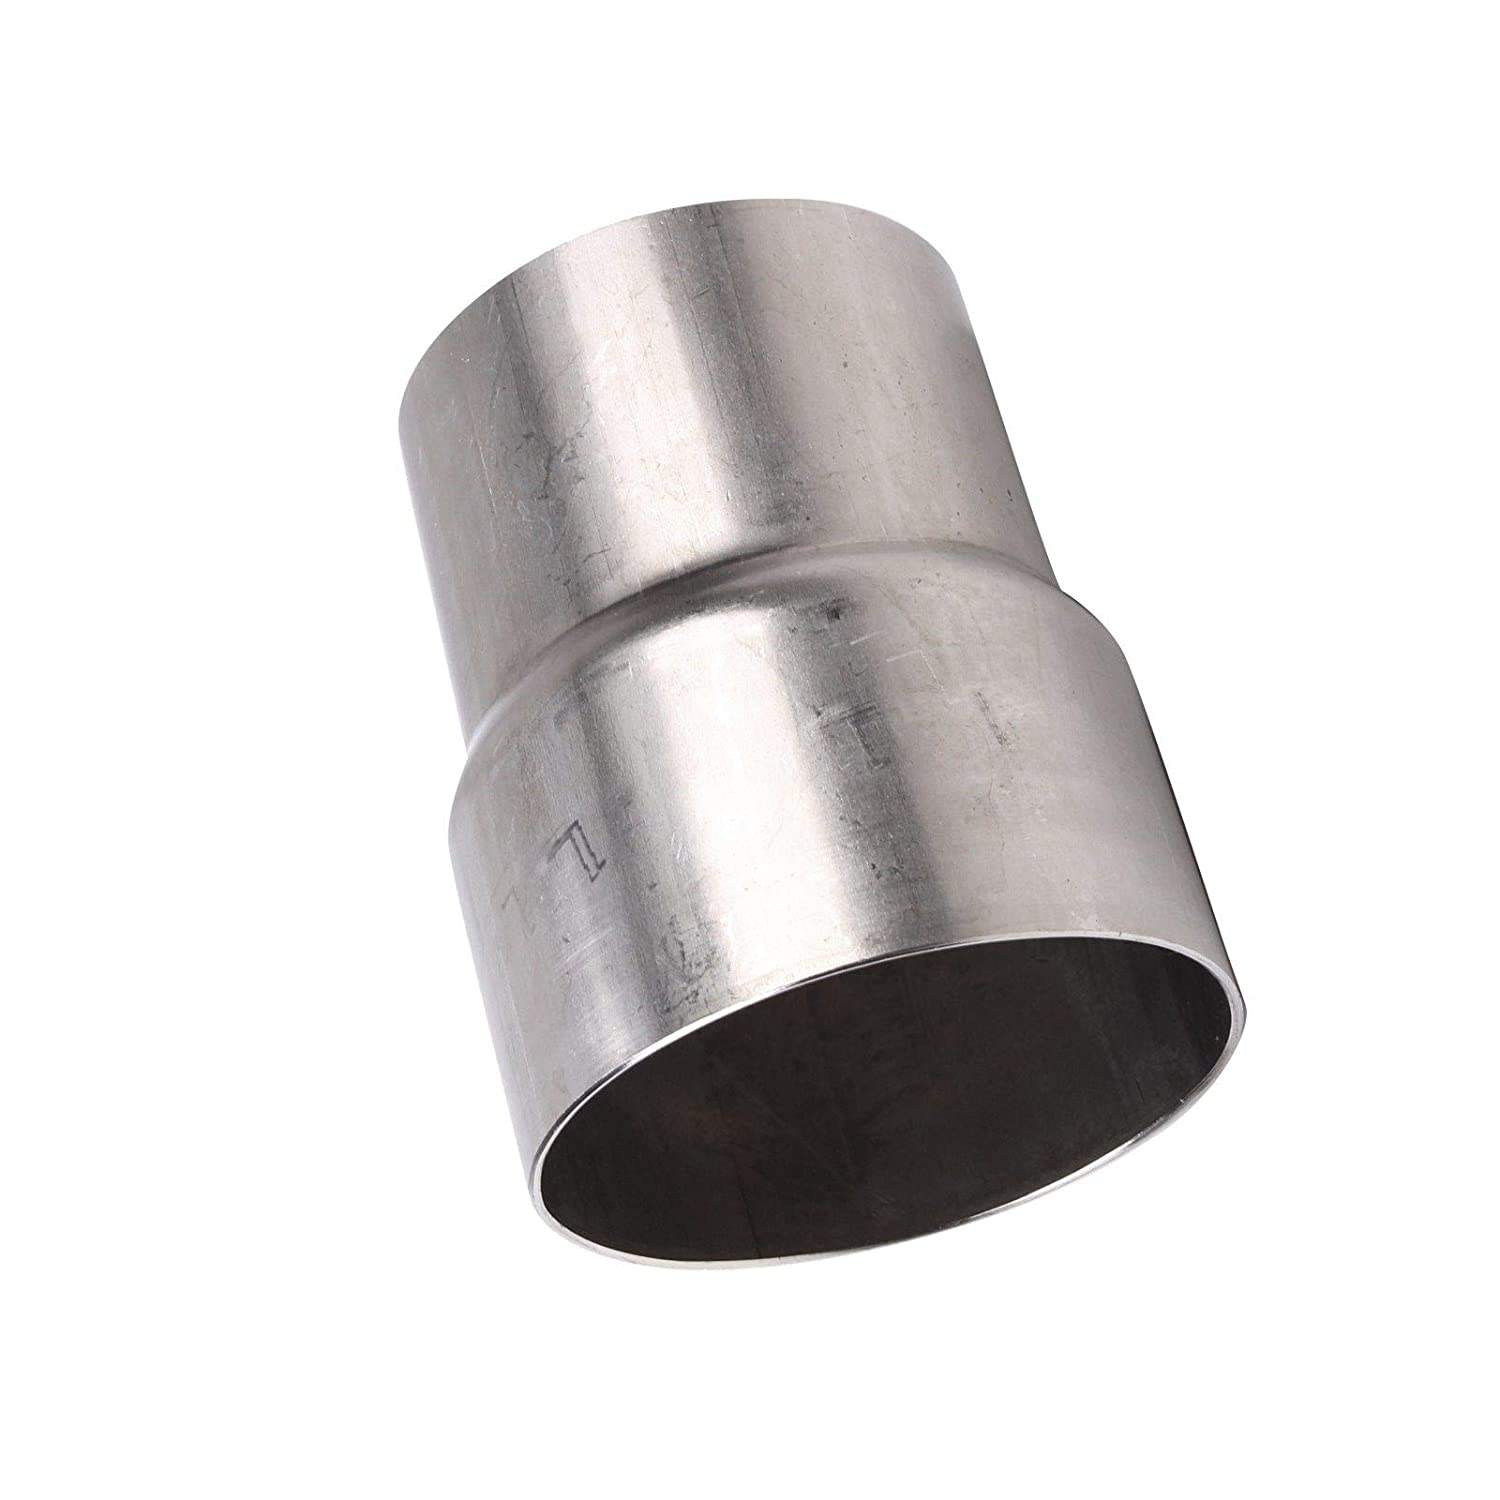 yjracing Universal 2 ID to 3 OD Exhaust Pipe Adapter Connector Reducer Stainless Steel